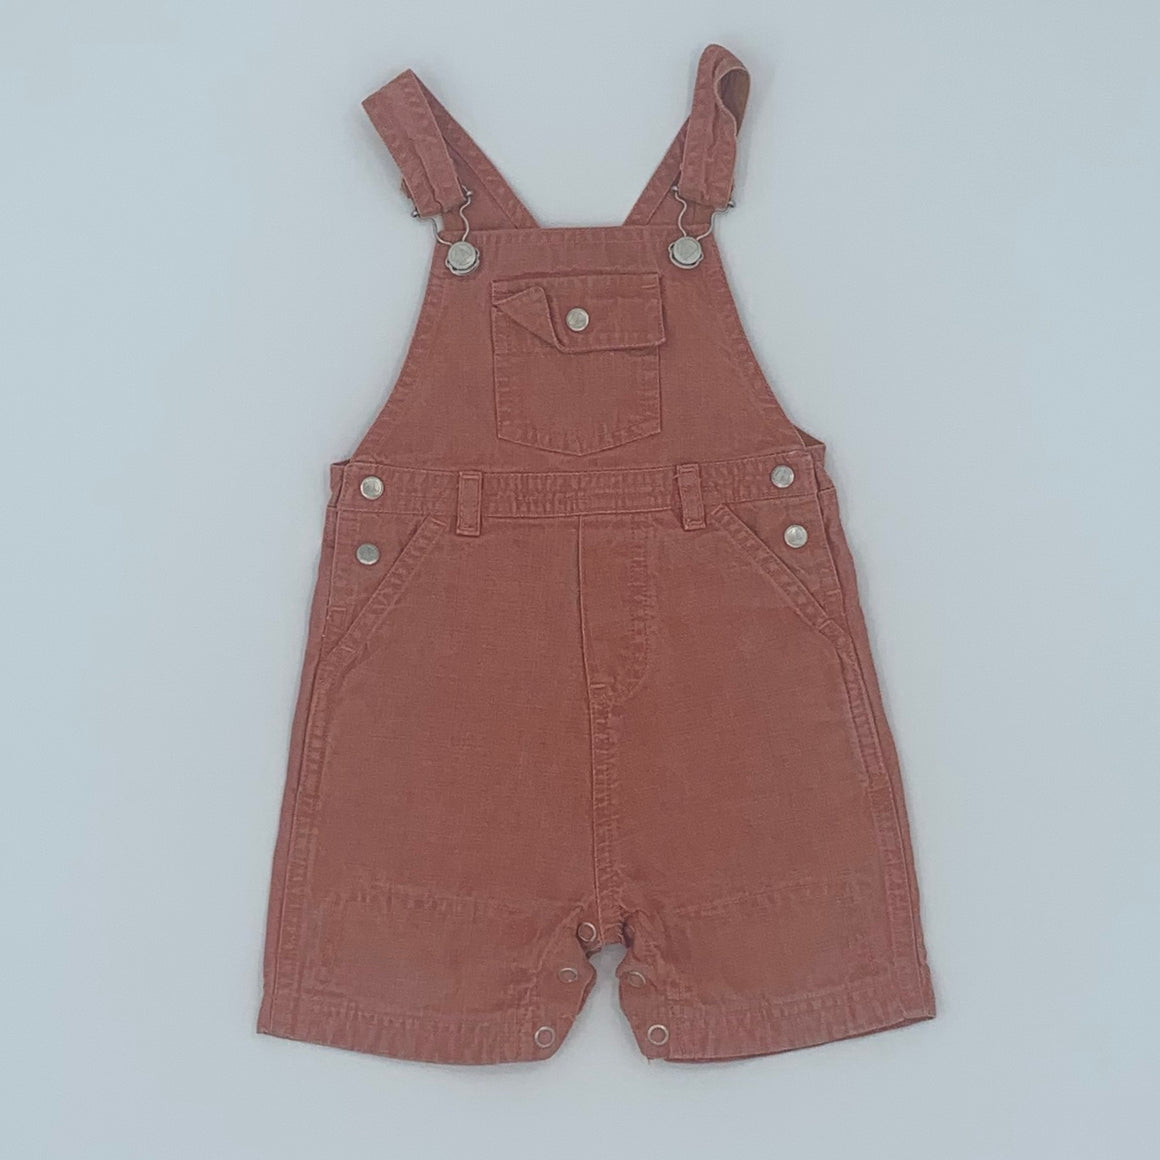 Gently Worn Petite Bateau dungaree shorts size 9-12 months